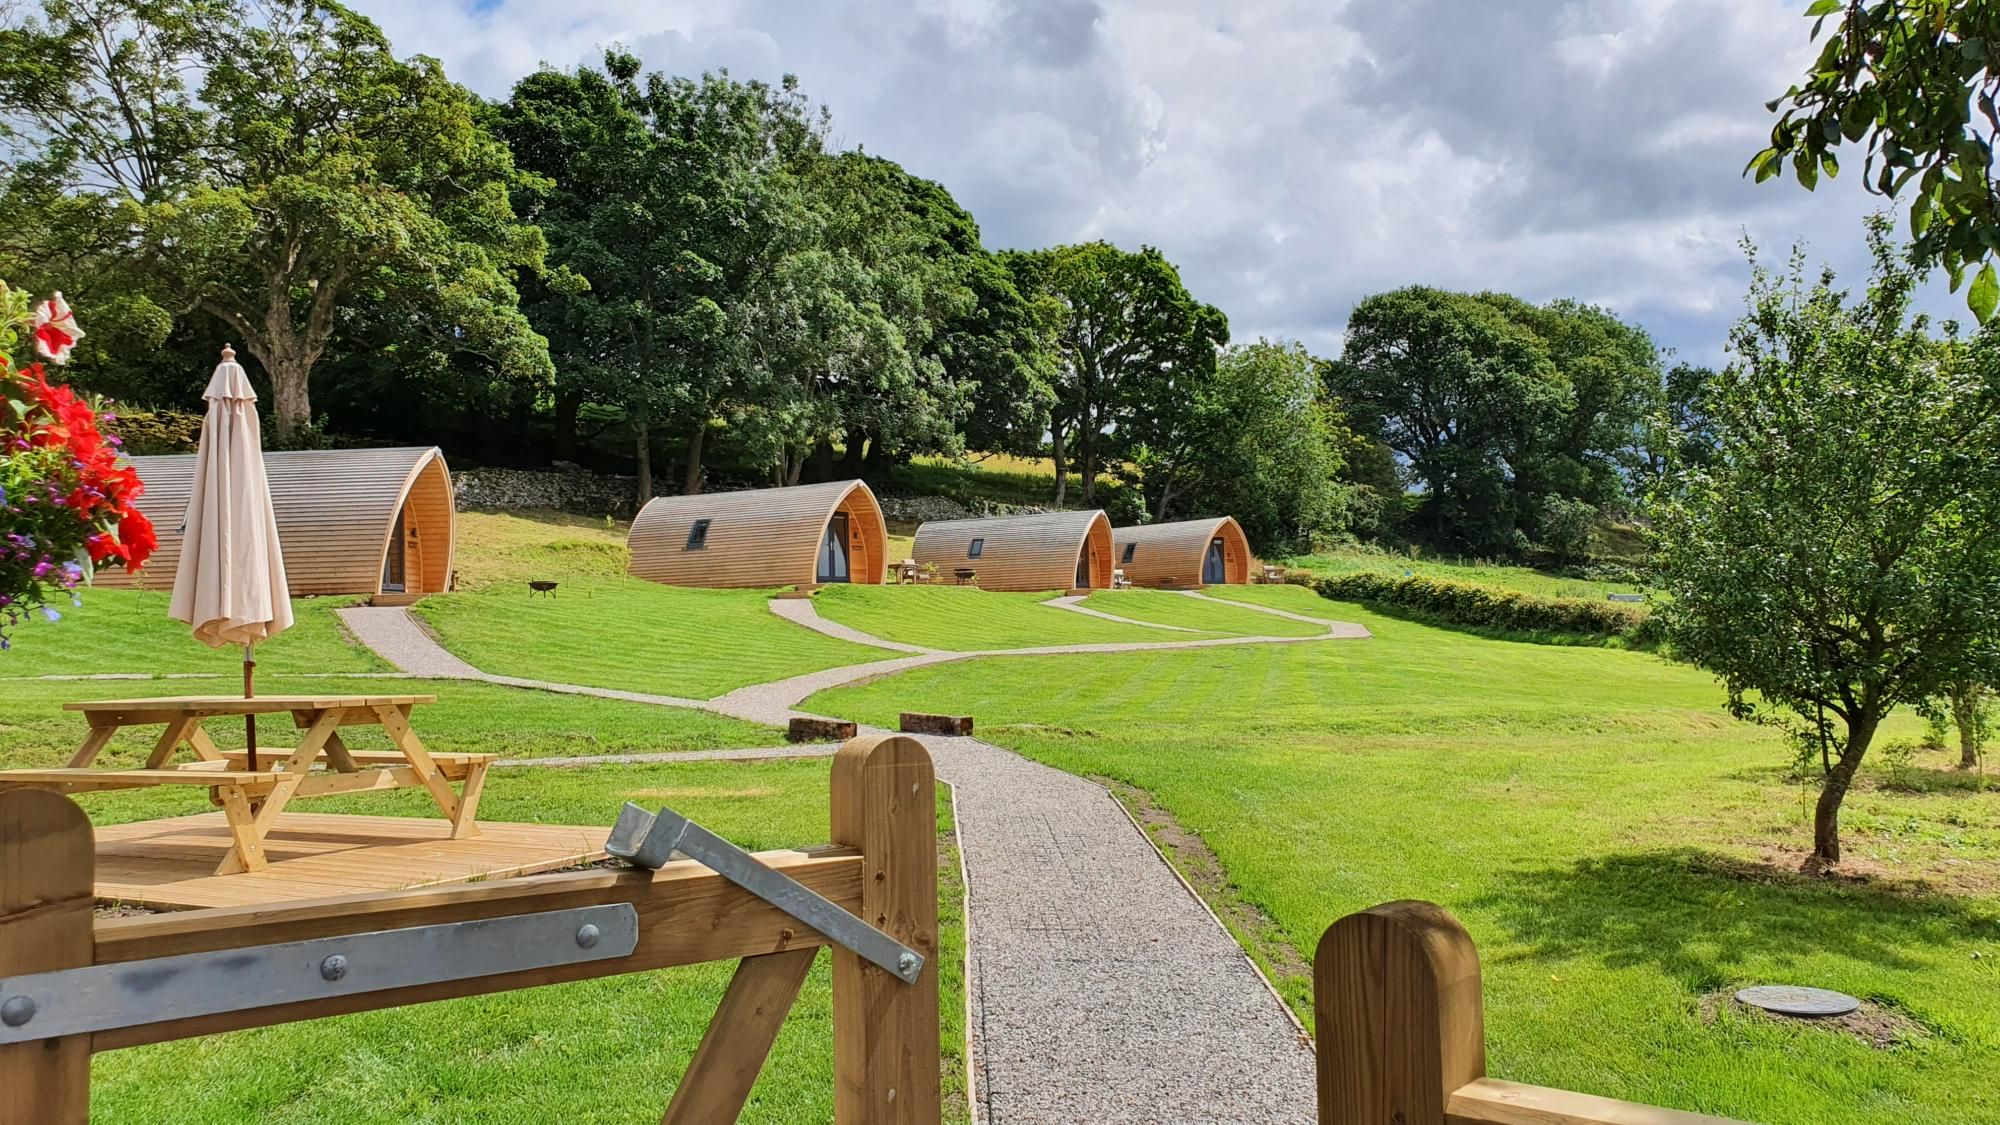 Glamping in North West England holidays at Cool Places